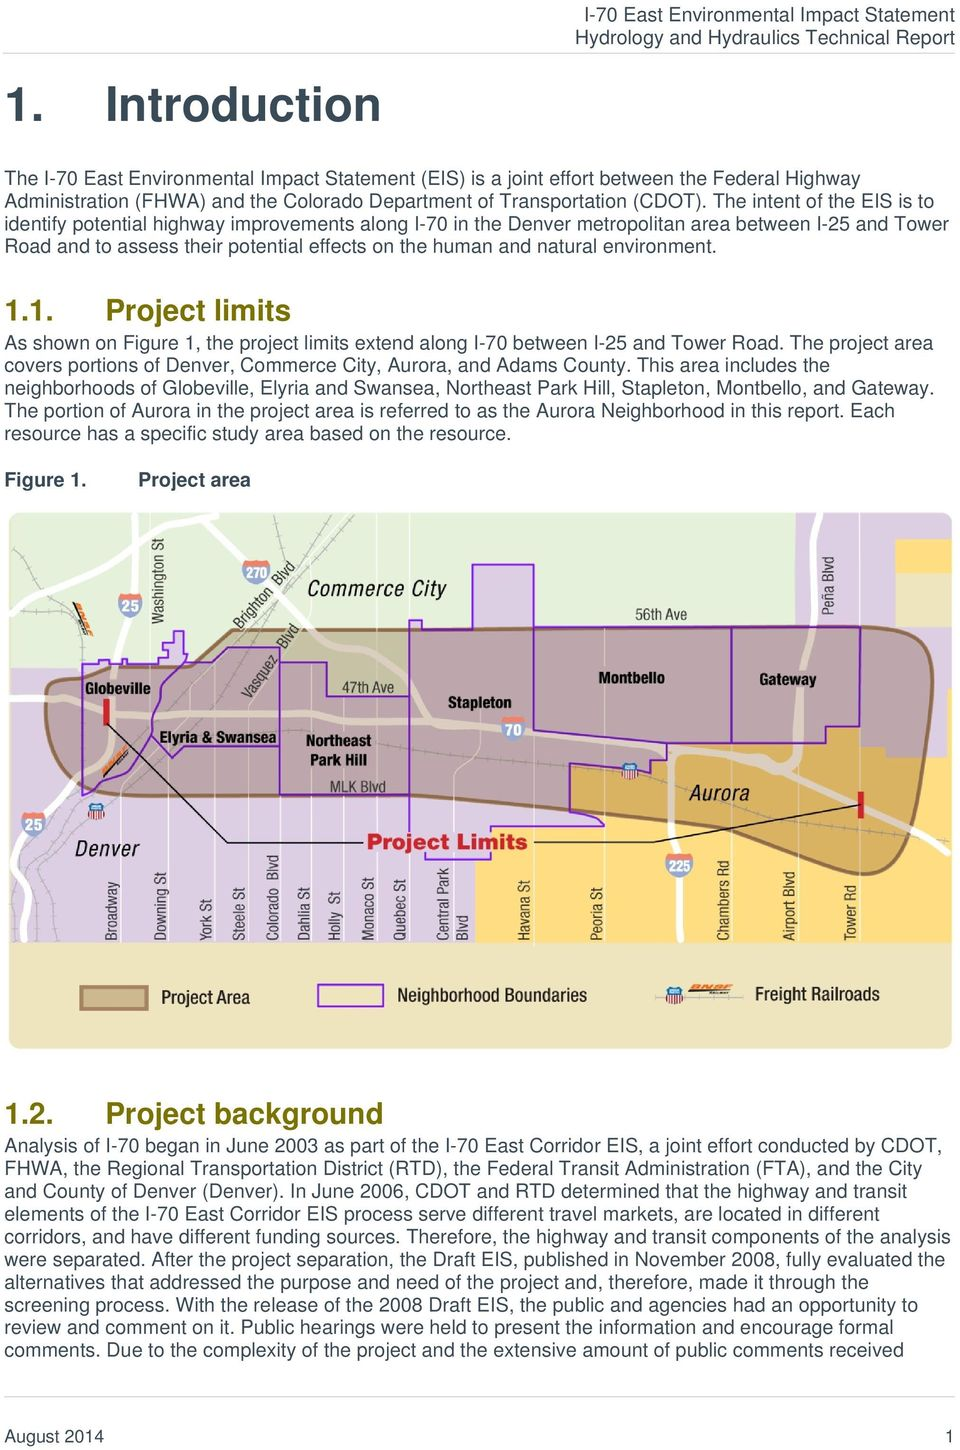 The intent of the EIS is to identify potential highway improvements along I-70 in the Denver metropolitan area between I-25 and Tower Road and to assess their potential effects on the human and